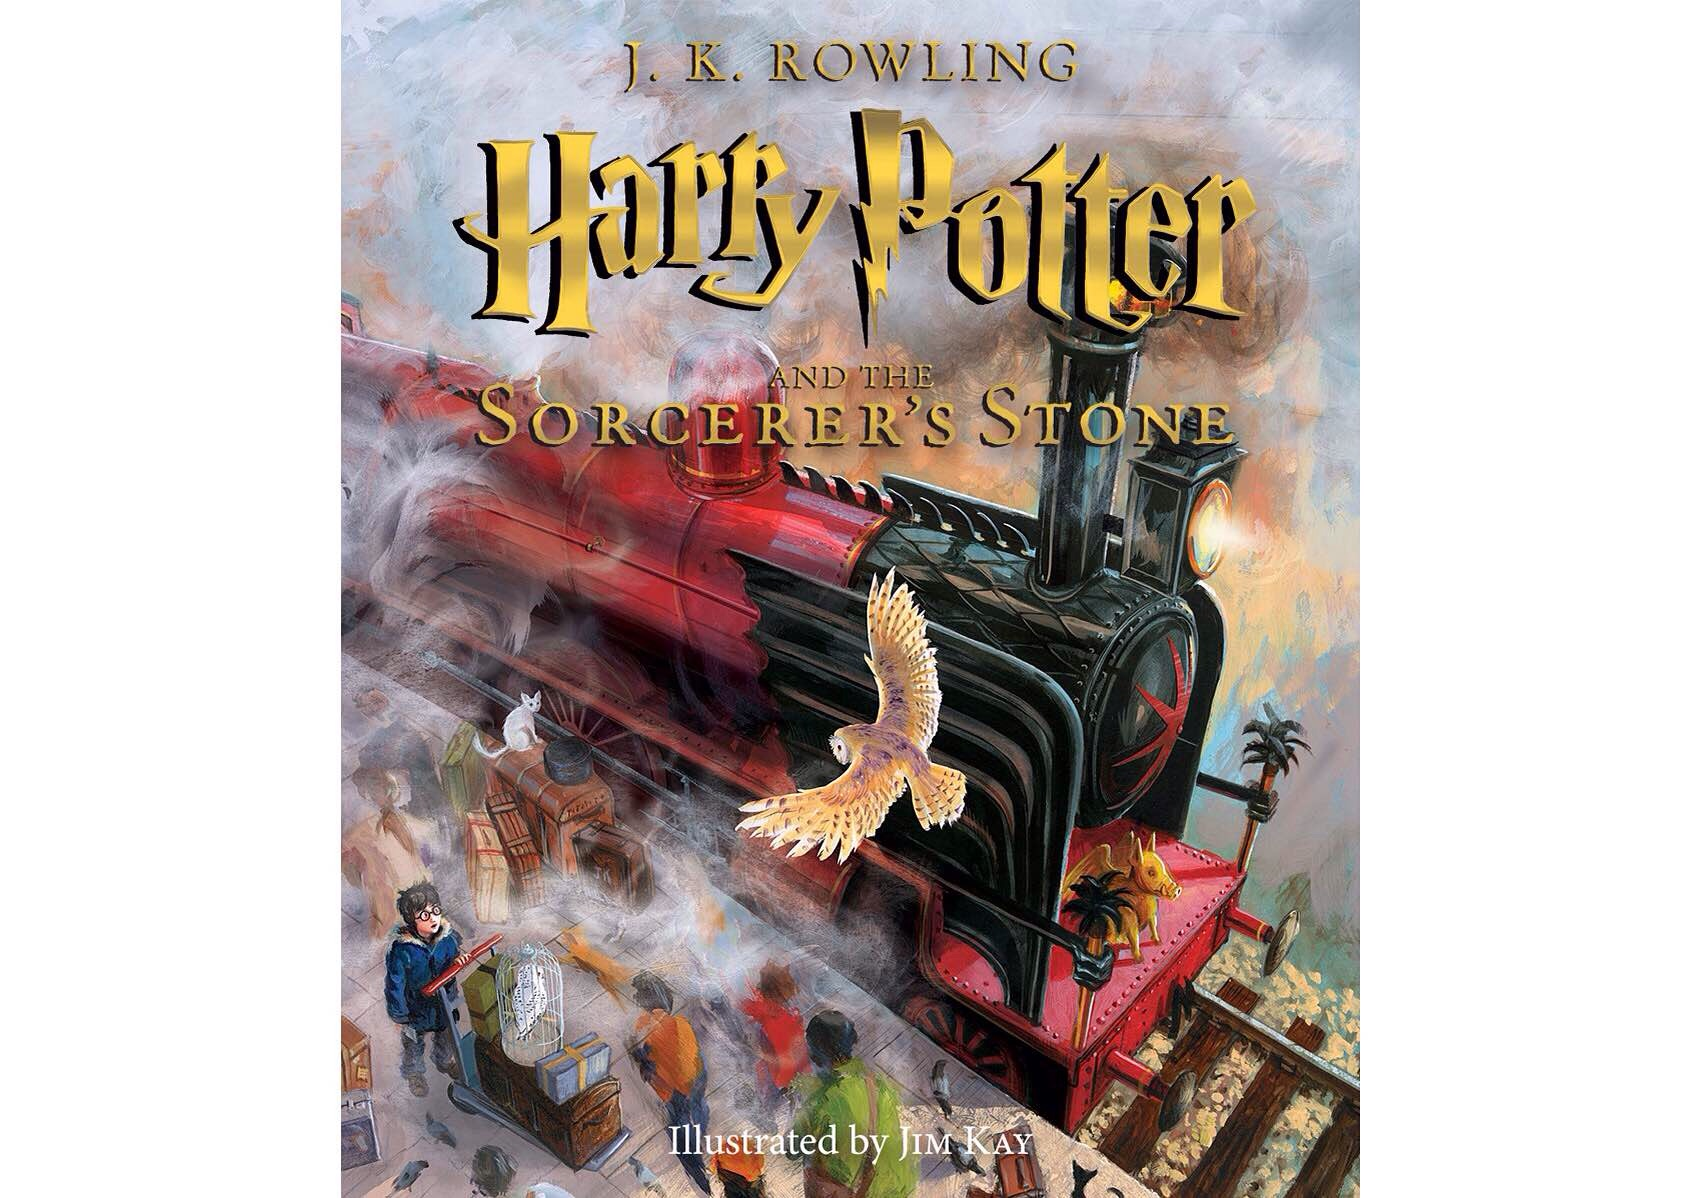 essay harry potter Free essays from bartleby | harry potter and the prisoner of azkaban harry potter and the prisoner of azkaban is an excellent book out of ten stars i would.